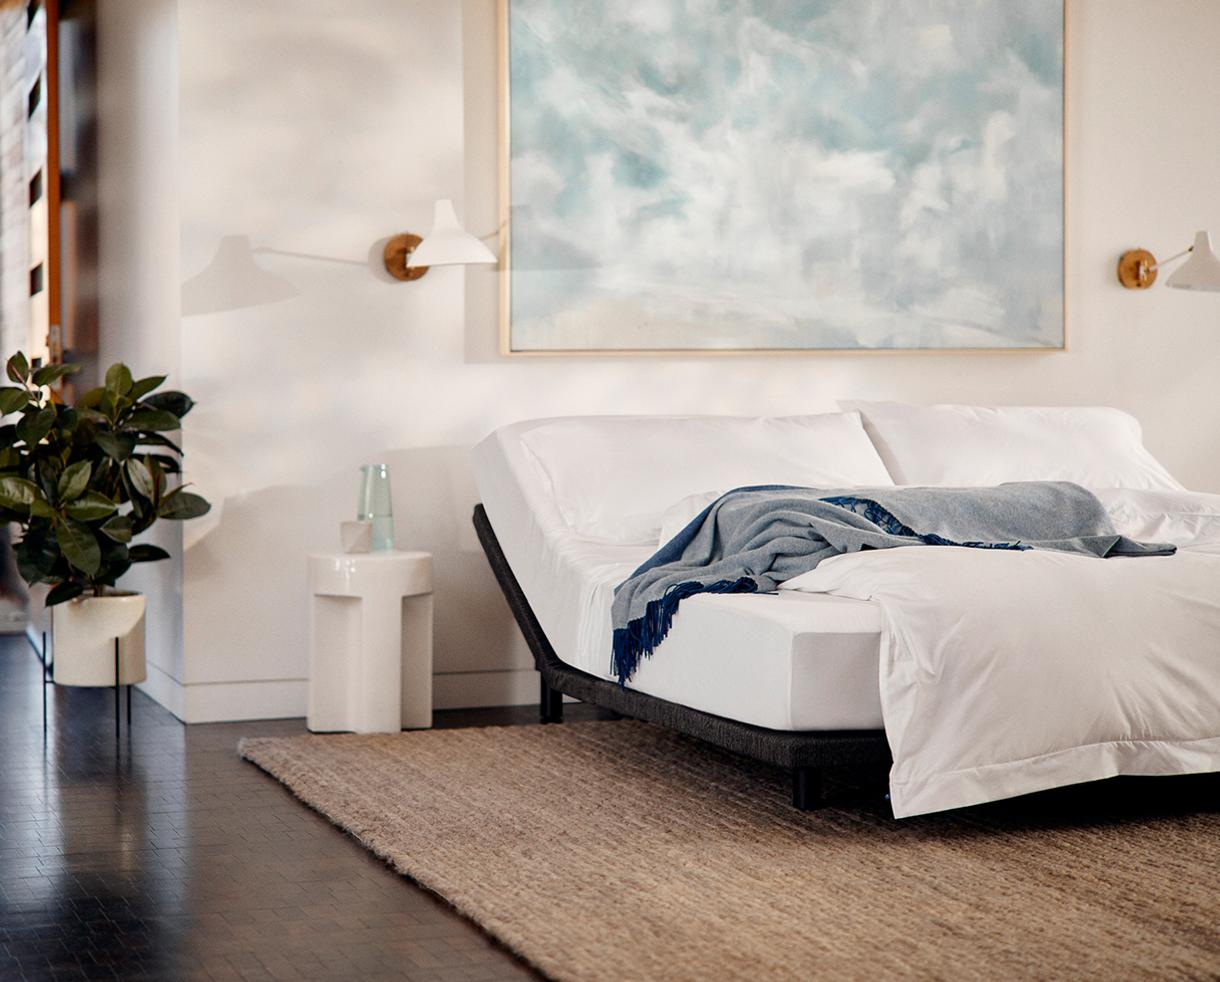 $50 Off Select Casper Mattresses - Thoughtfully Designed Sleep Products for Your Best Rest